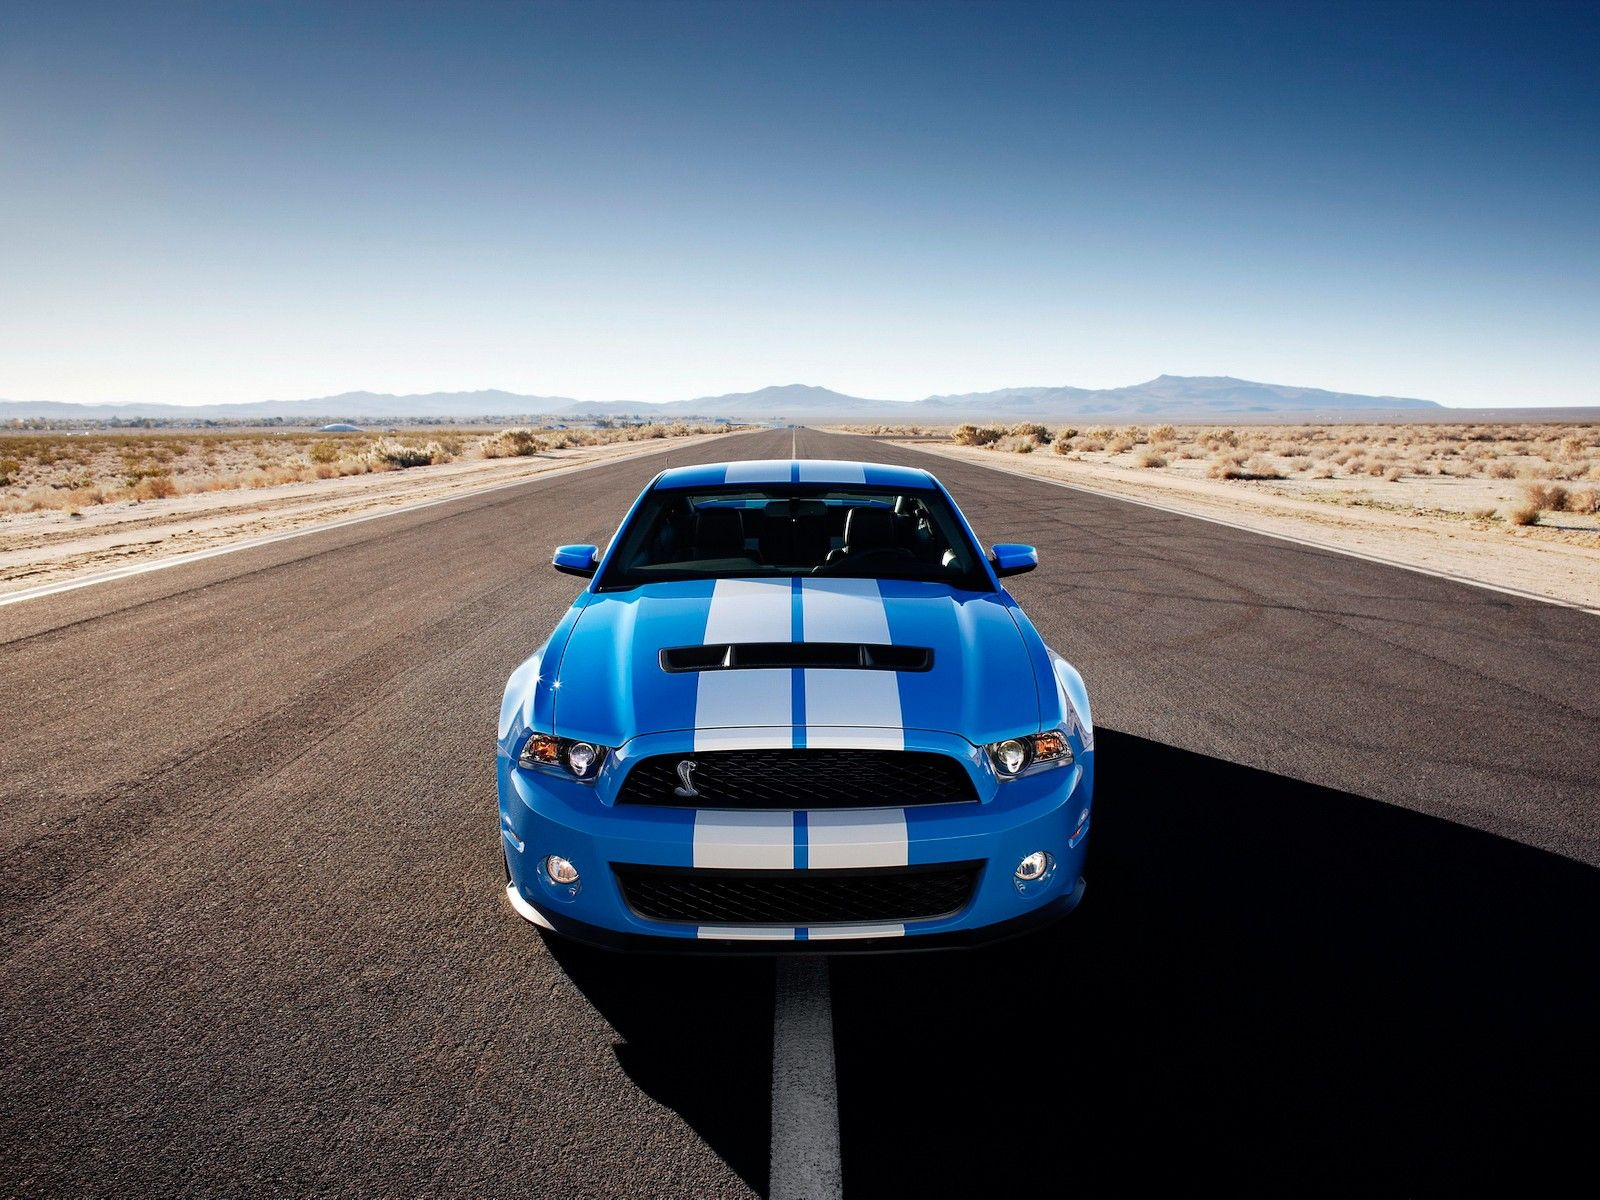 Cars Desert Muscle Cars Roads Vehicles Ford Mustang Ford Mustang Shelby Gt500kr Front View Ford Mustang Shelby Mustang Shelby Ford Mustang Shelby Gt500